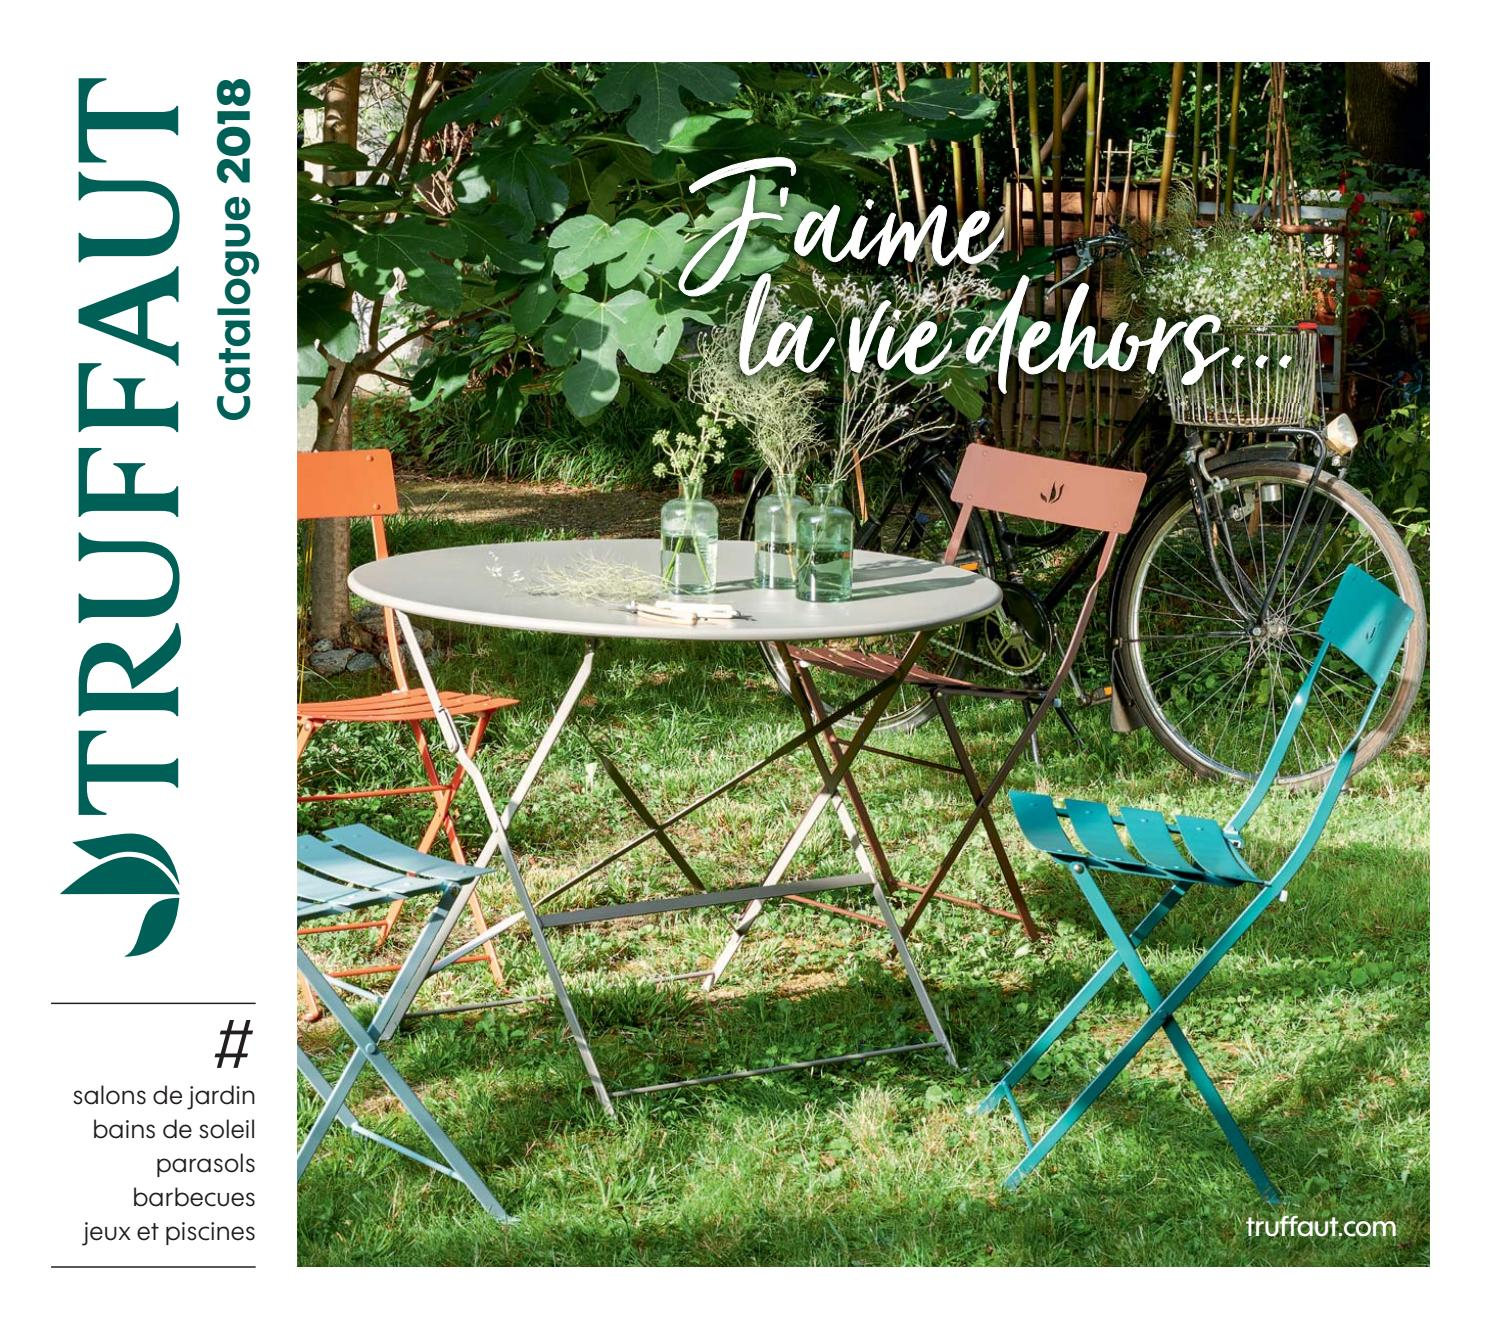 catalogue mobilier de jardin et barbecue t 2018 jardinerie truffaut by truffaut issuu. Black Bedroom Furniture Sets. Home Design Ideas